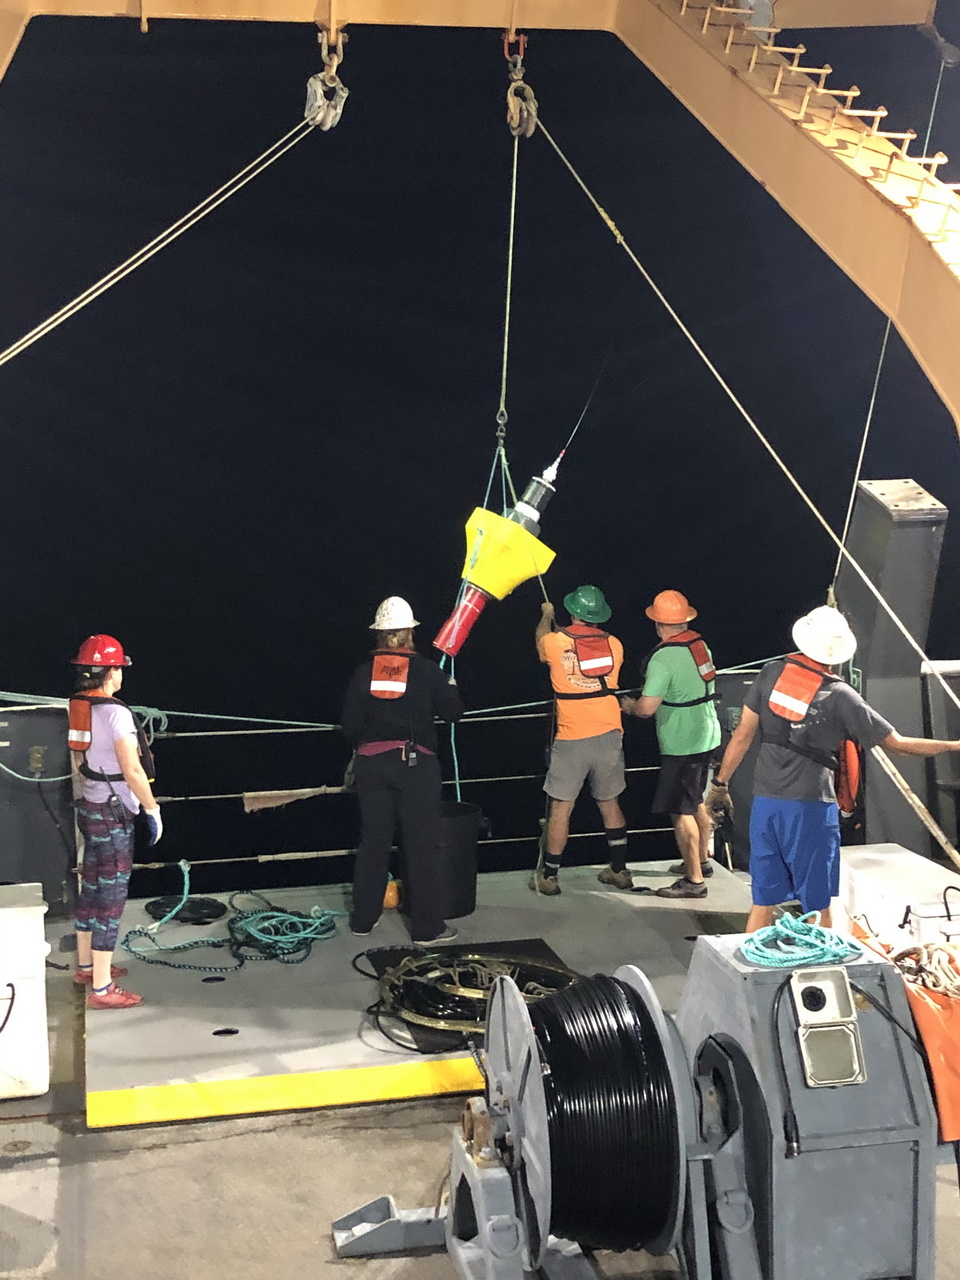 The acoustics and deck crews deploy a DASBR+ that was modified with help from the PIFSC Science Operations fabrication team.  This DASBR includes lights and an AIS system for improved nighttime retrieval. Photo: NOAA Fisheries.